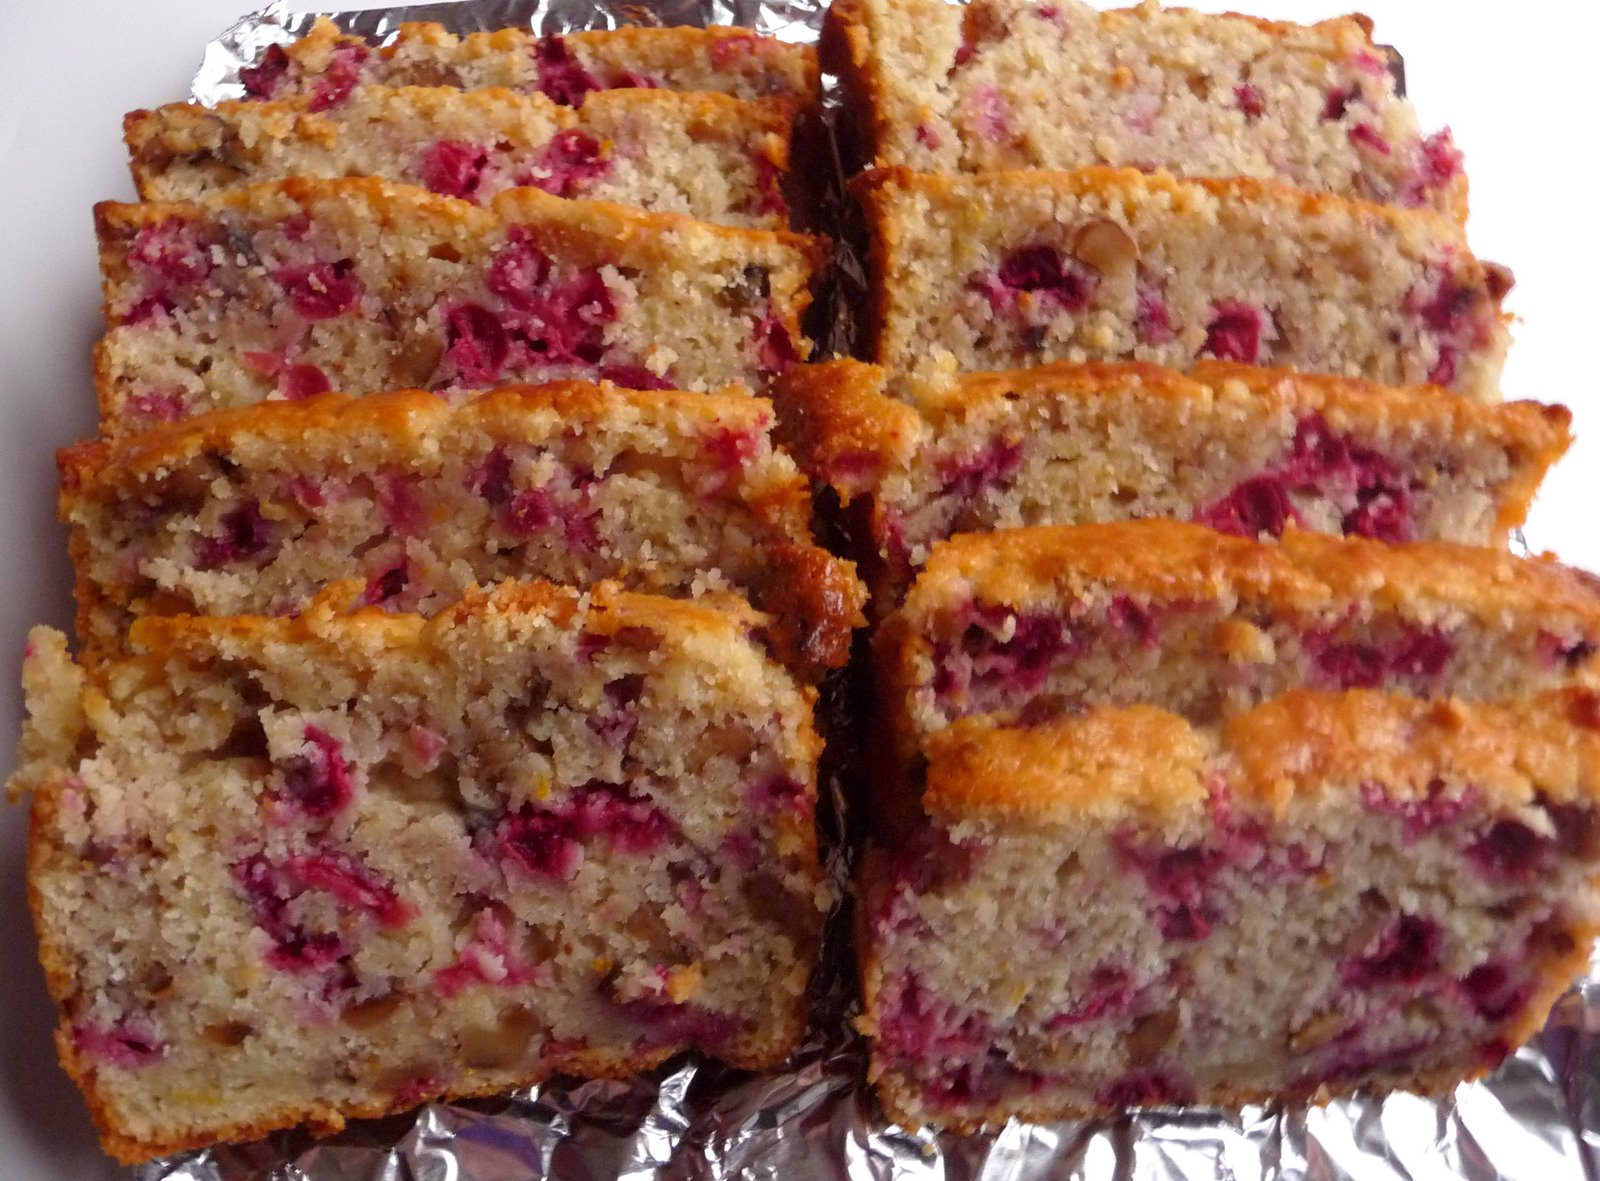 Christine's Cuisine: Cranberry Orange Nut Bread